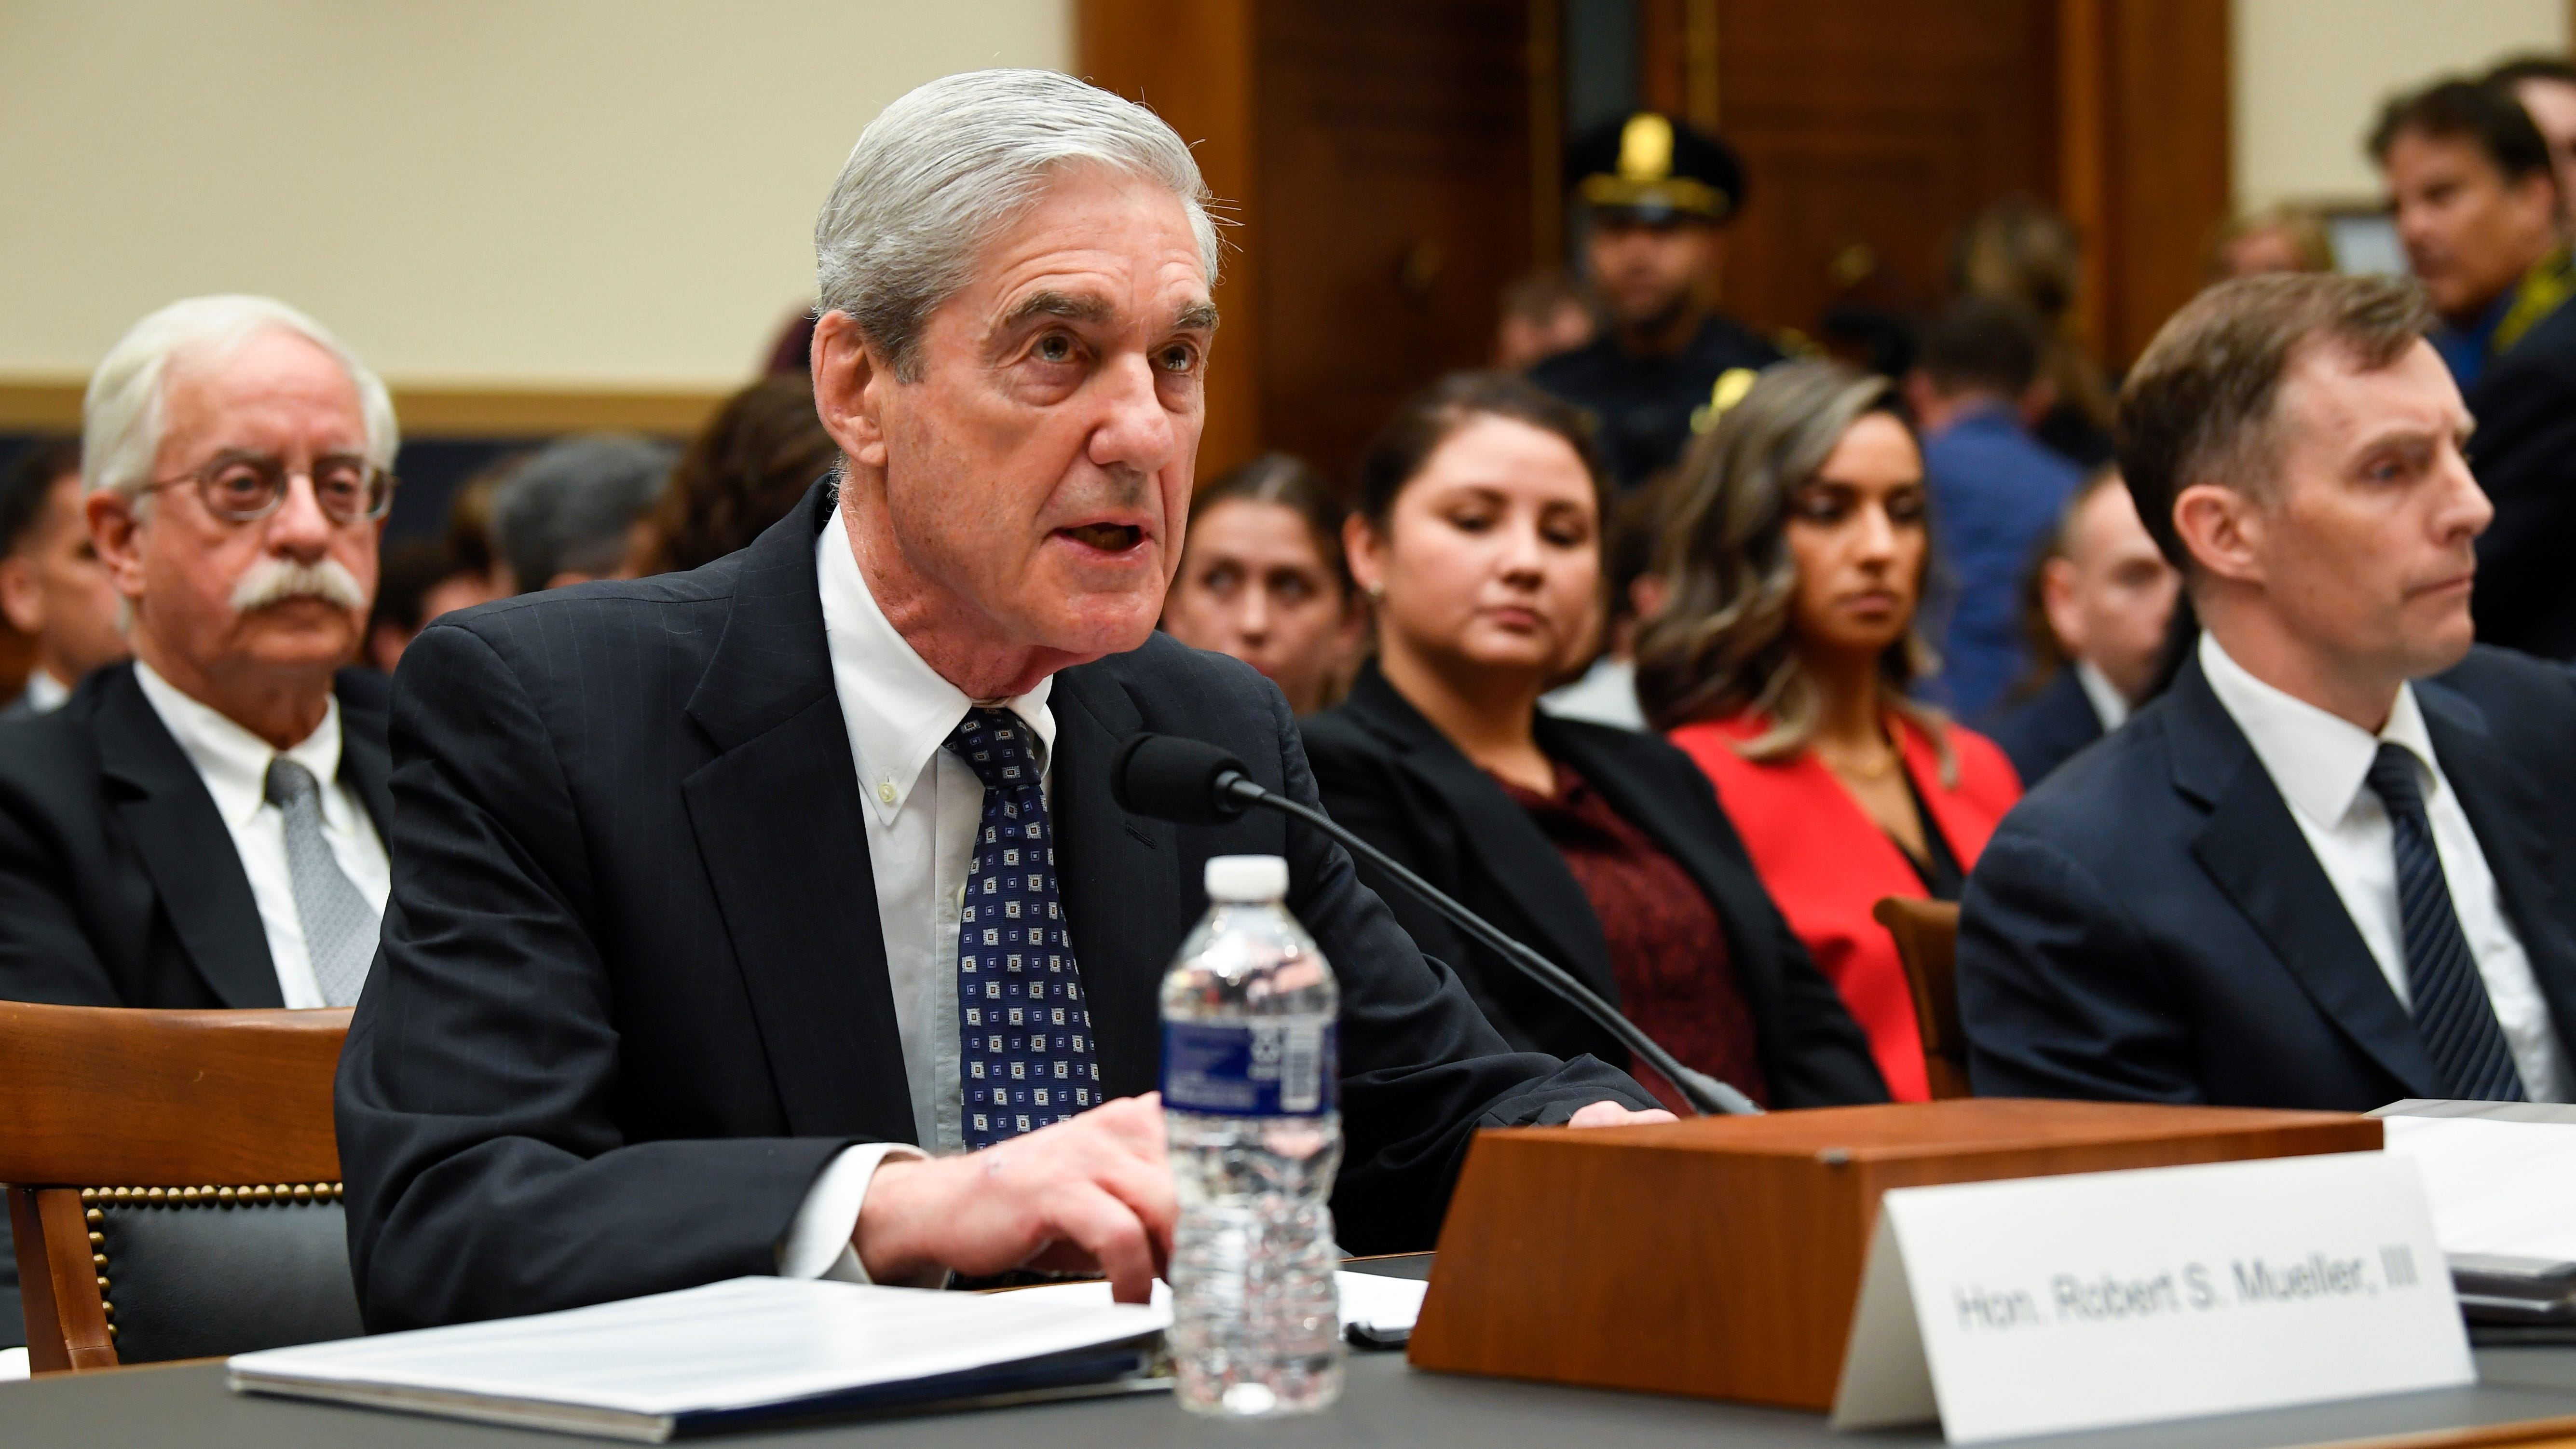 Former Special Counsel Robert S. Mueller testifies to House Judiciary Committee on 'Oversight of the Report on the Investigation into Russian Interference in the 2016 Presidential Election.' Mueller, who investigated alleged Russian interference during the 2016 presidential election, said in May that his report 'speaks for itself.'